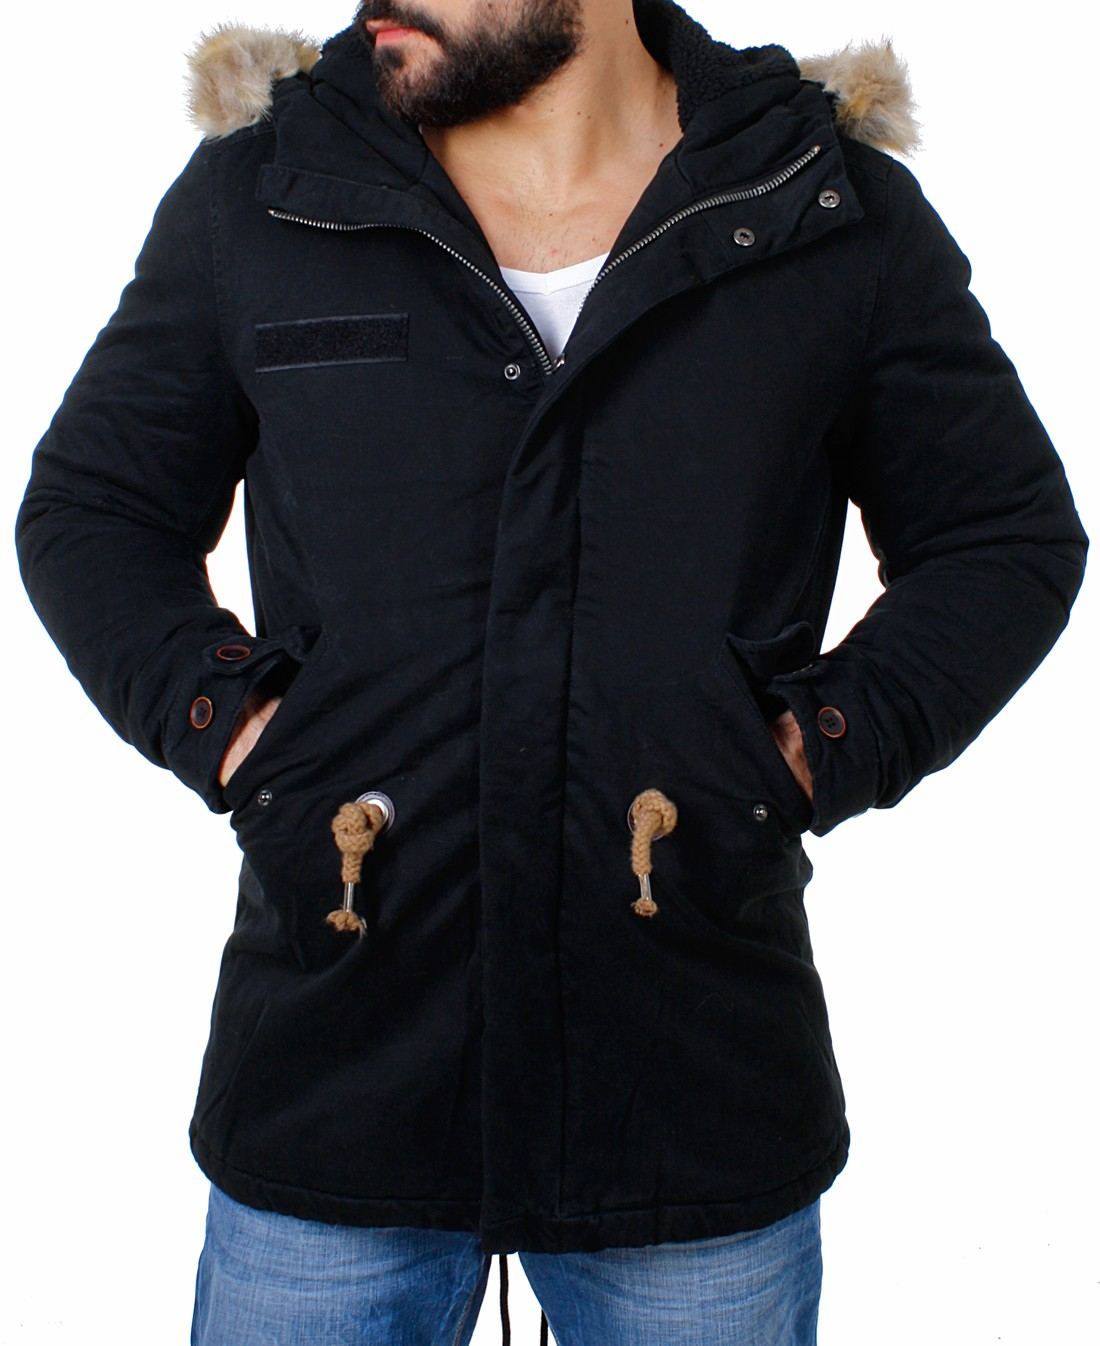 young rich herren parka winter jacke kapuze kurzmantel warm gef ttert vintage ebay. Black Bedroom Furniture Sets. Home Design Ideas